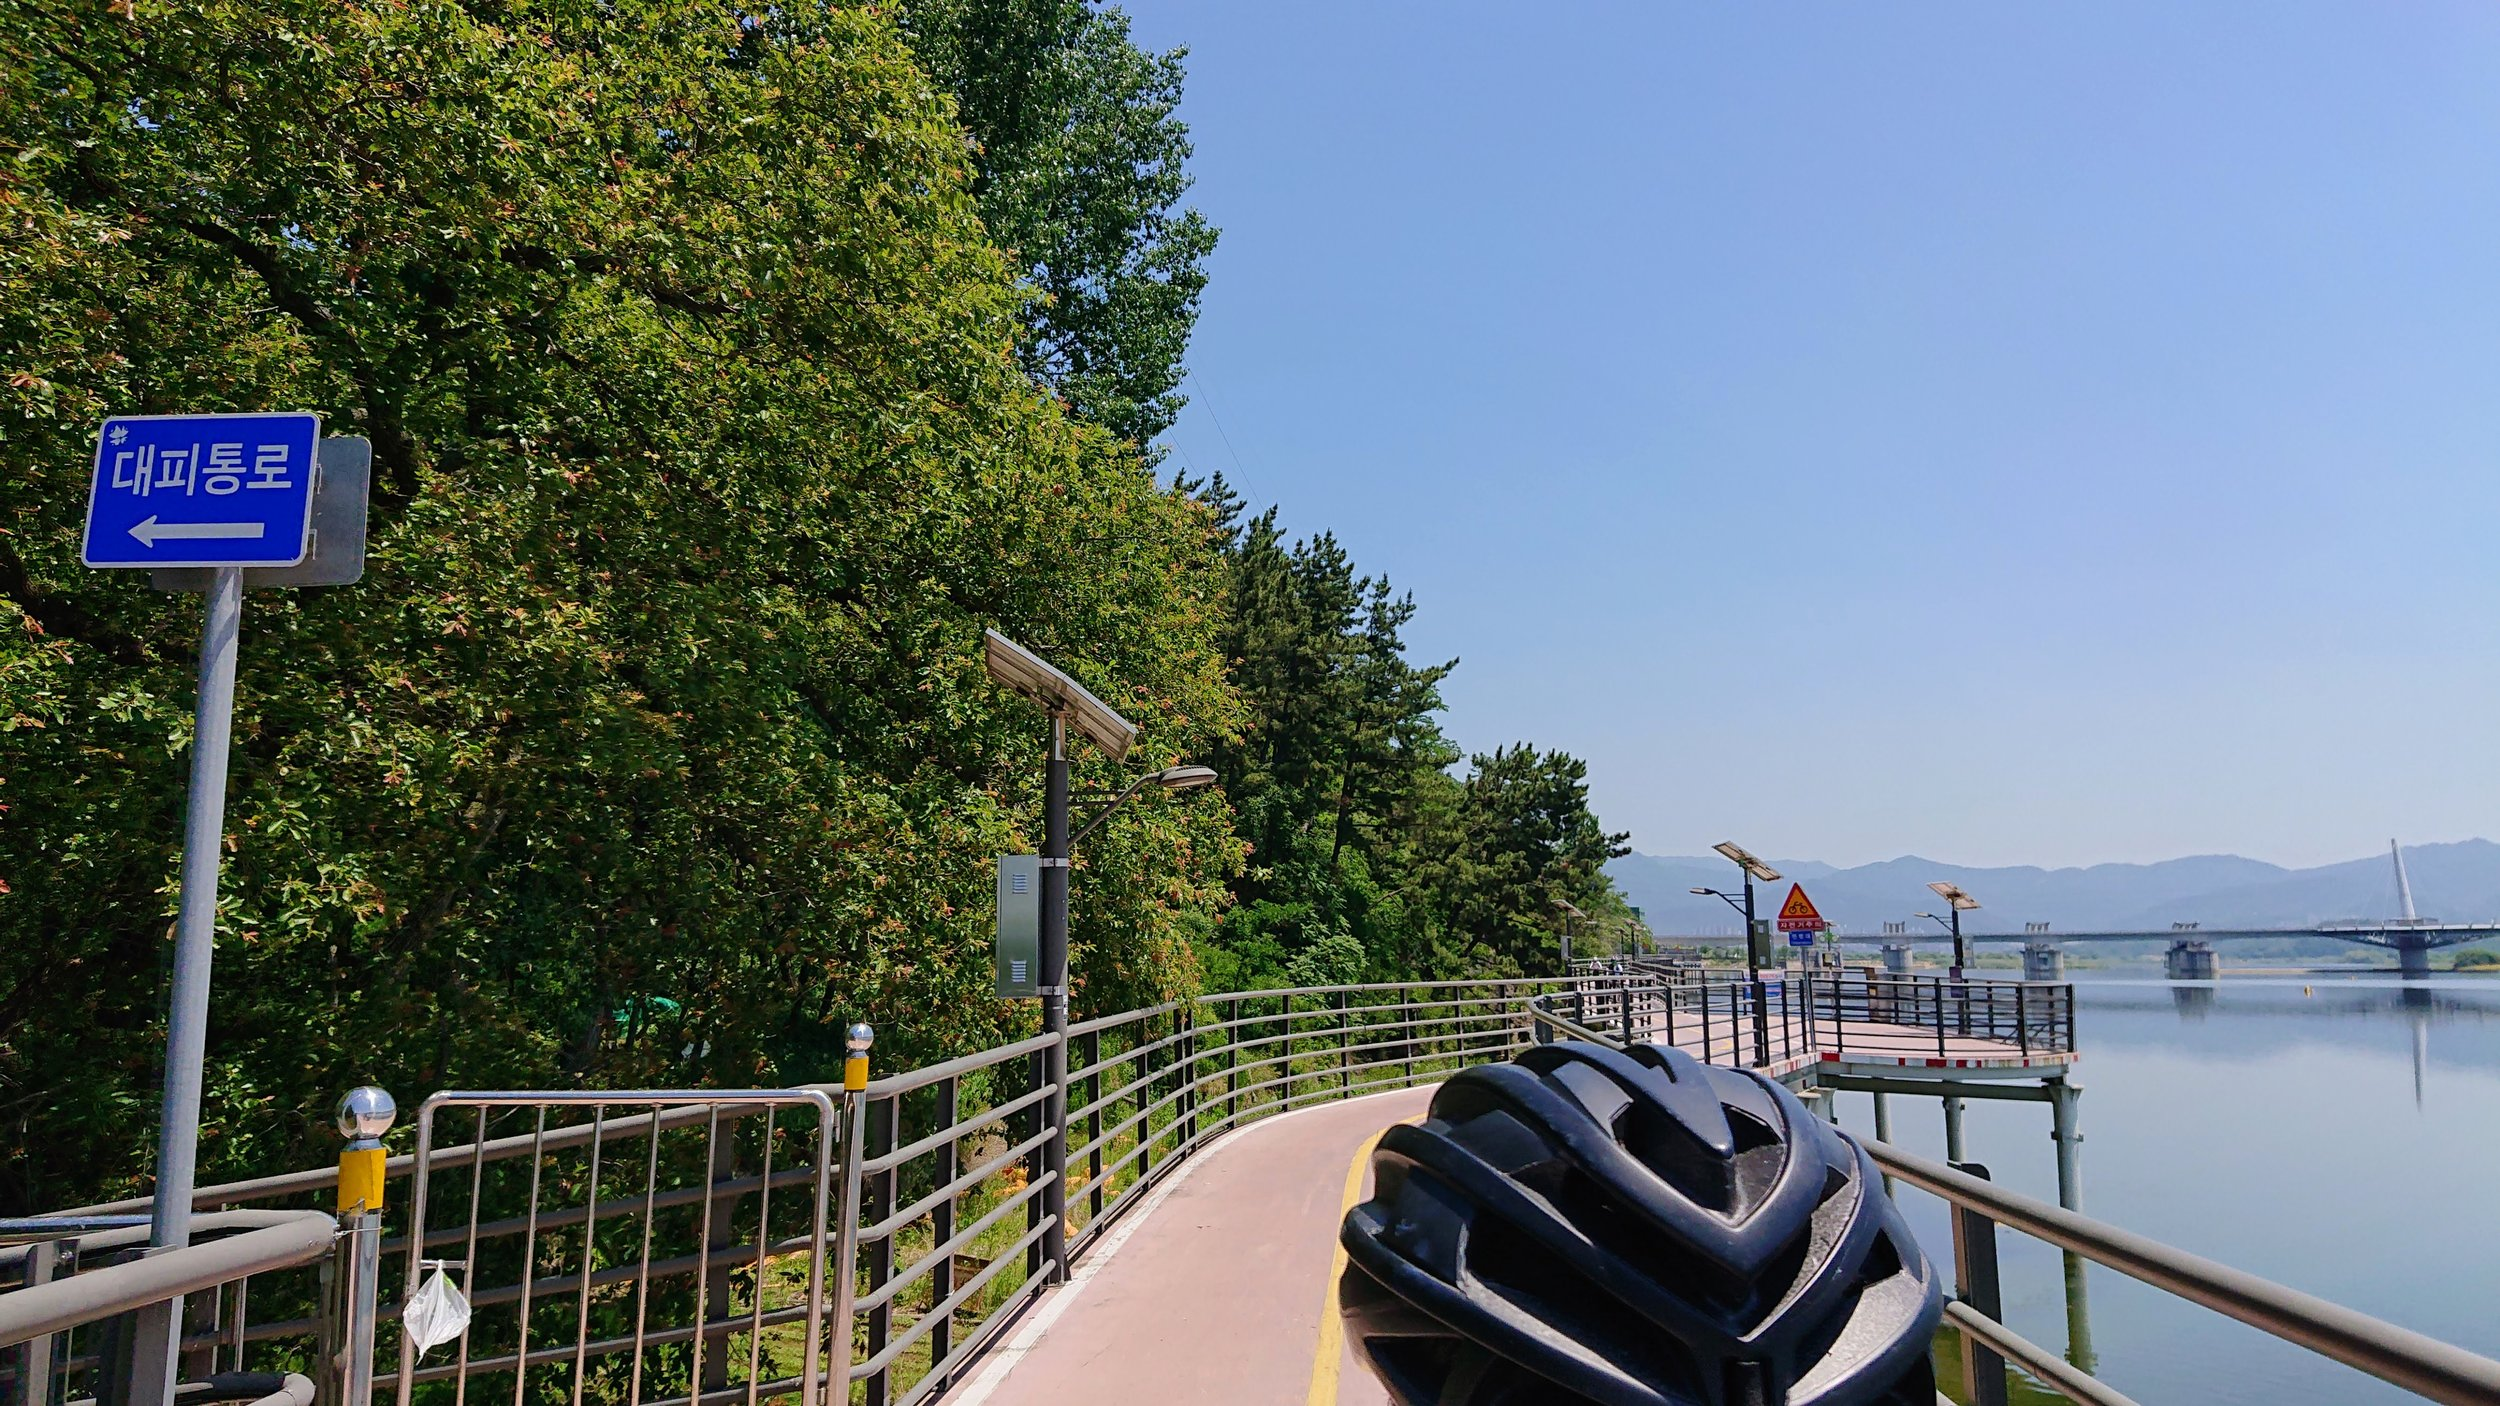 When we say the route was flat due to its proximity to the river, we weren't kidding. For this stretch, they literally built the bike path on a bridge beyond the natural landscape into the water.